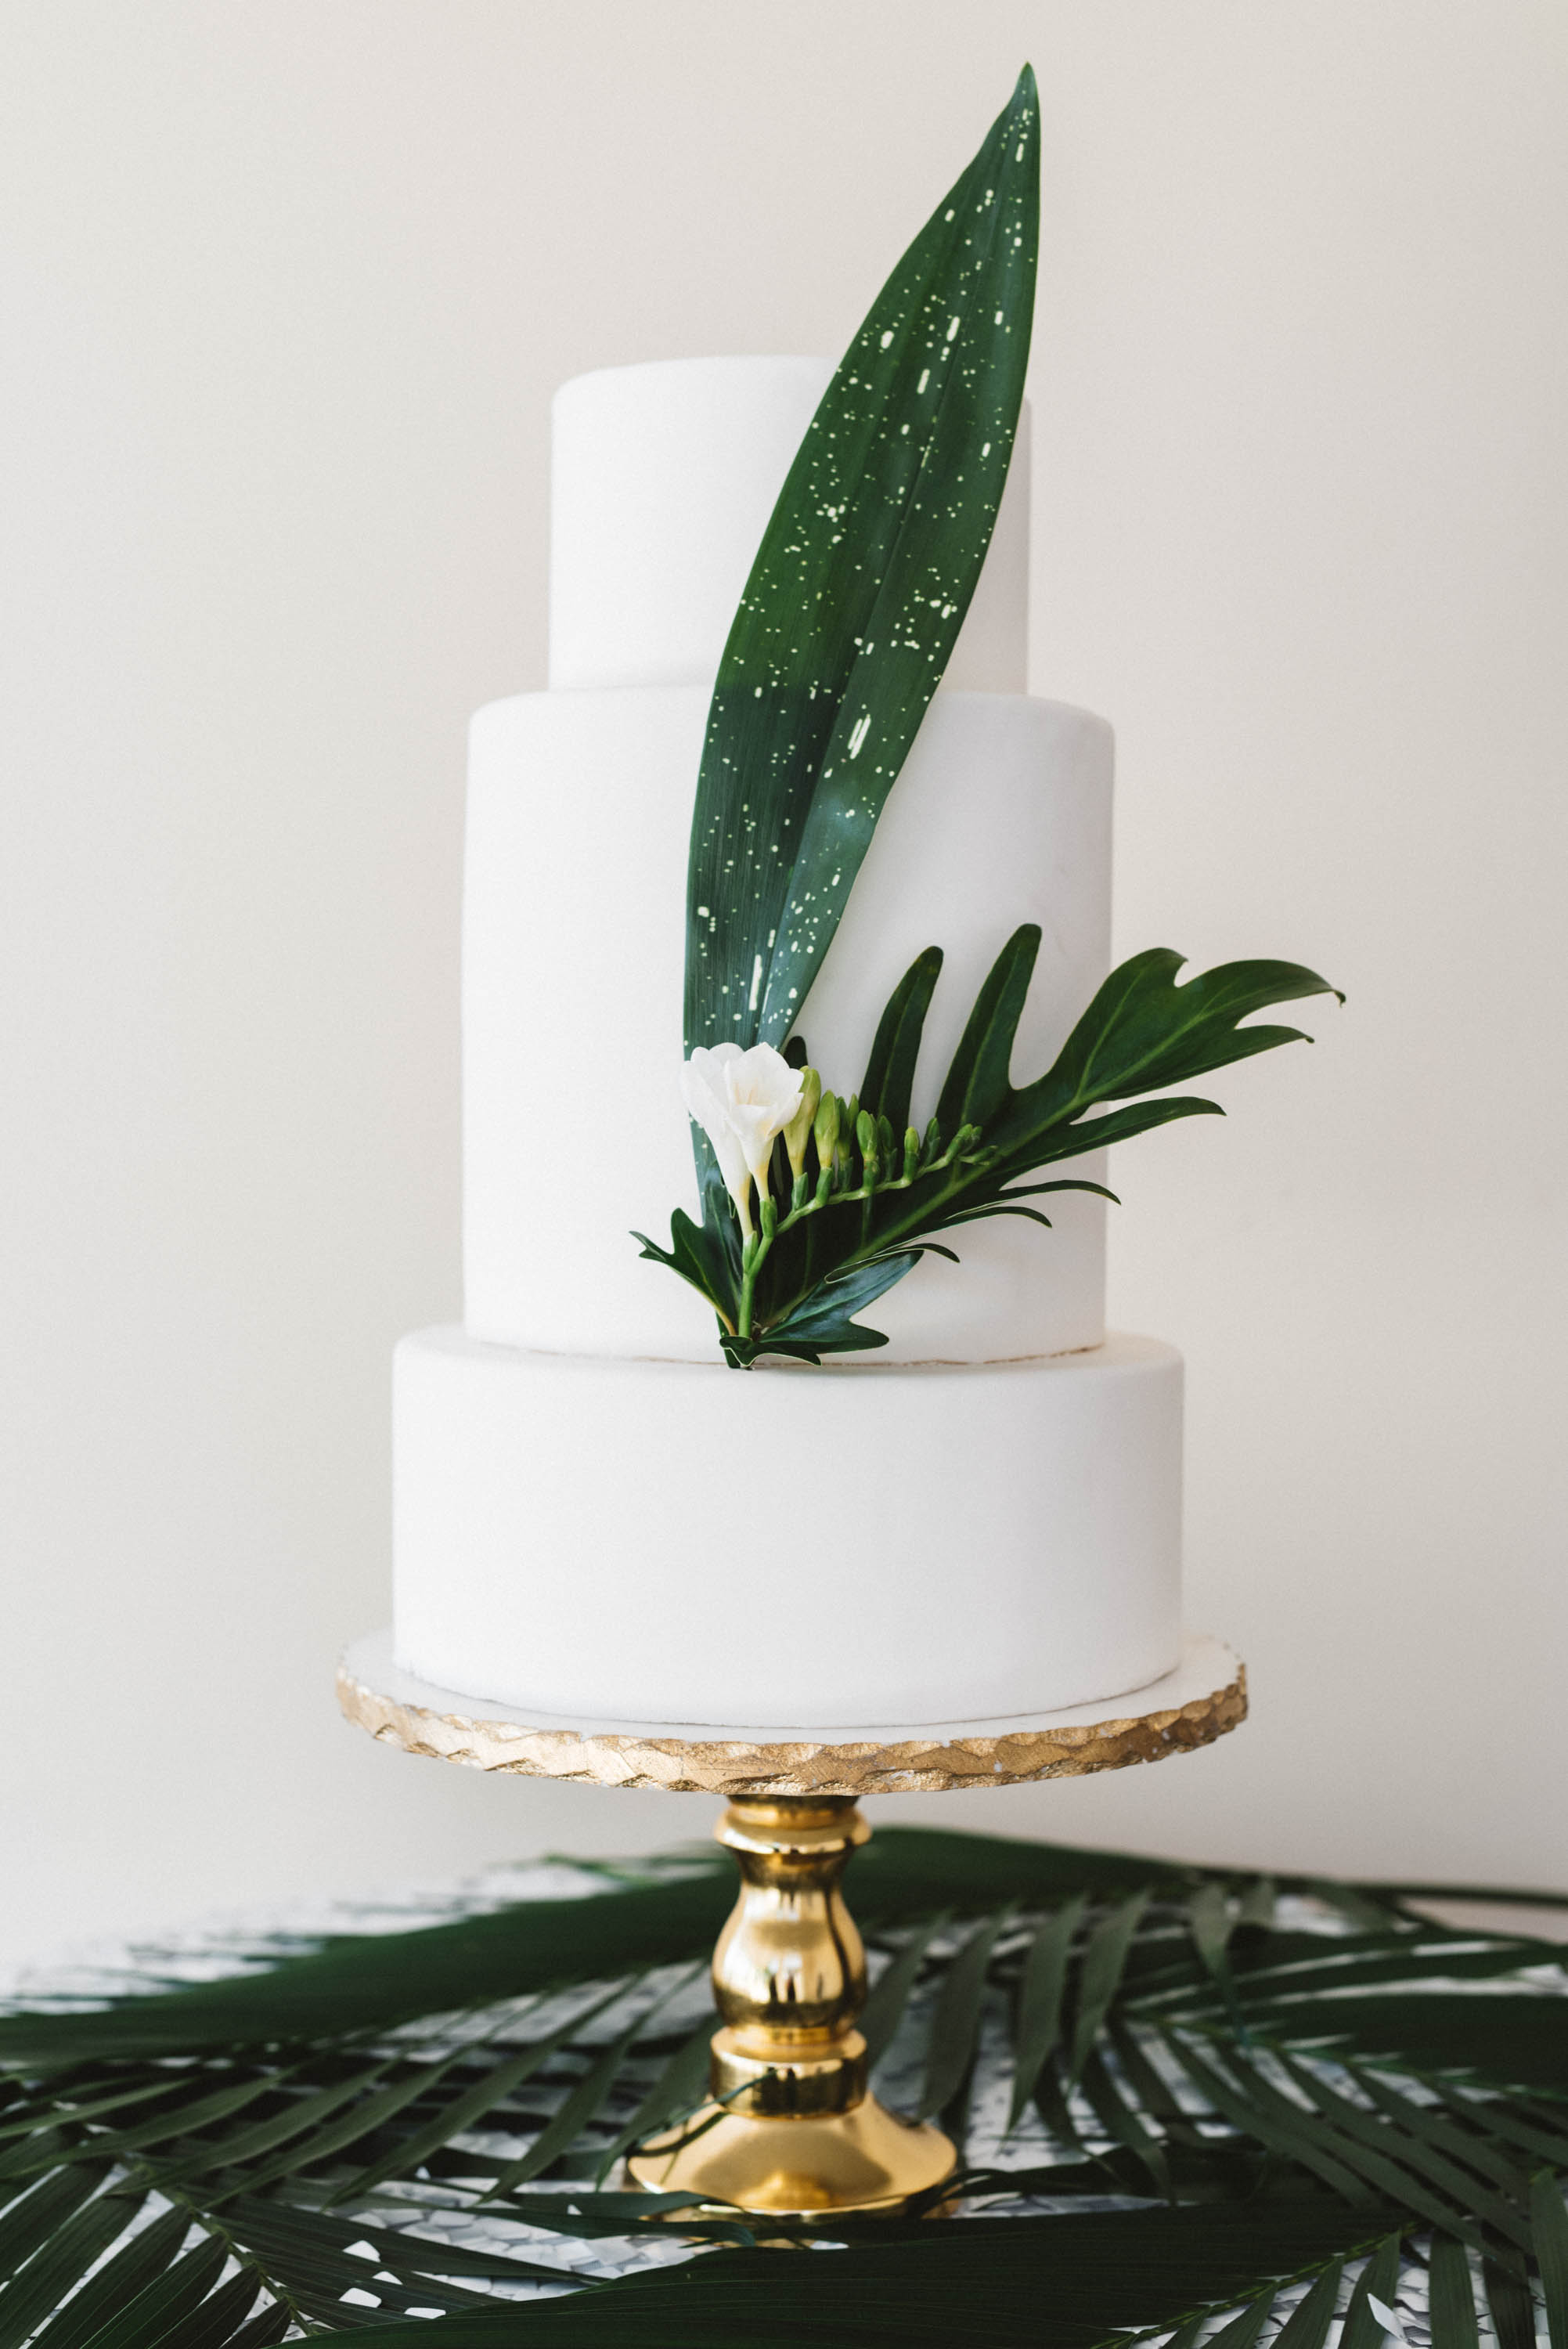 Three-Tiered White Cake with Tropical Leaves